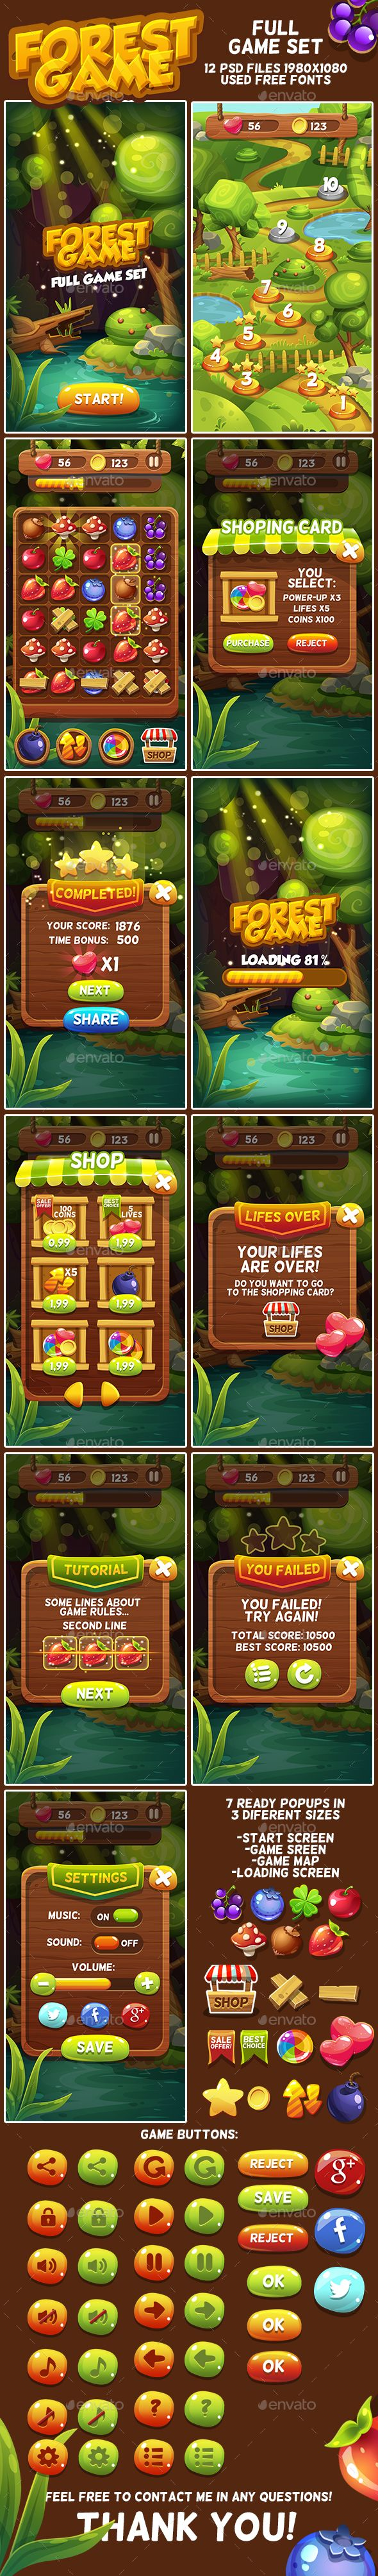 Forest Cartoon Full Game Set with GUI — Photoshop PSD #berry #magic • Available here → https://graphicriver.net/item/forest-cartoon-full-game-set-with-gui/17840742?ref=pxcr